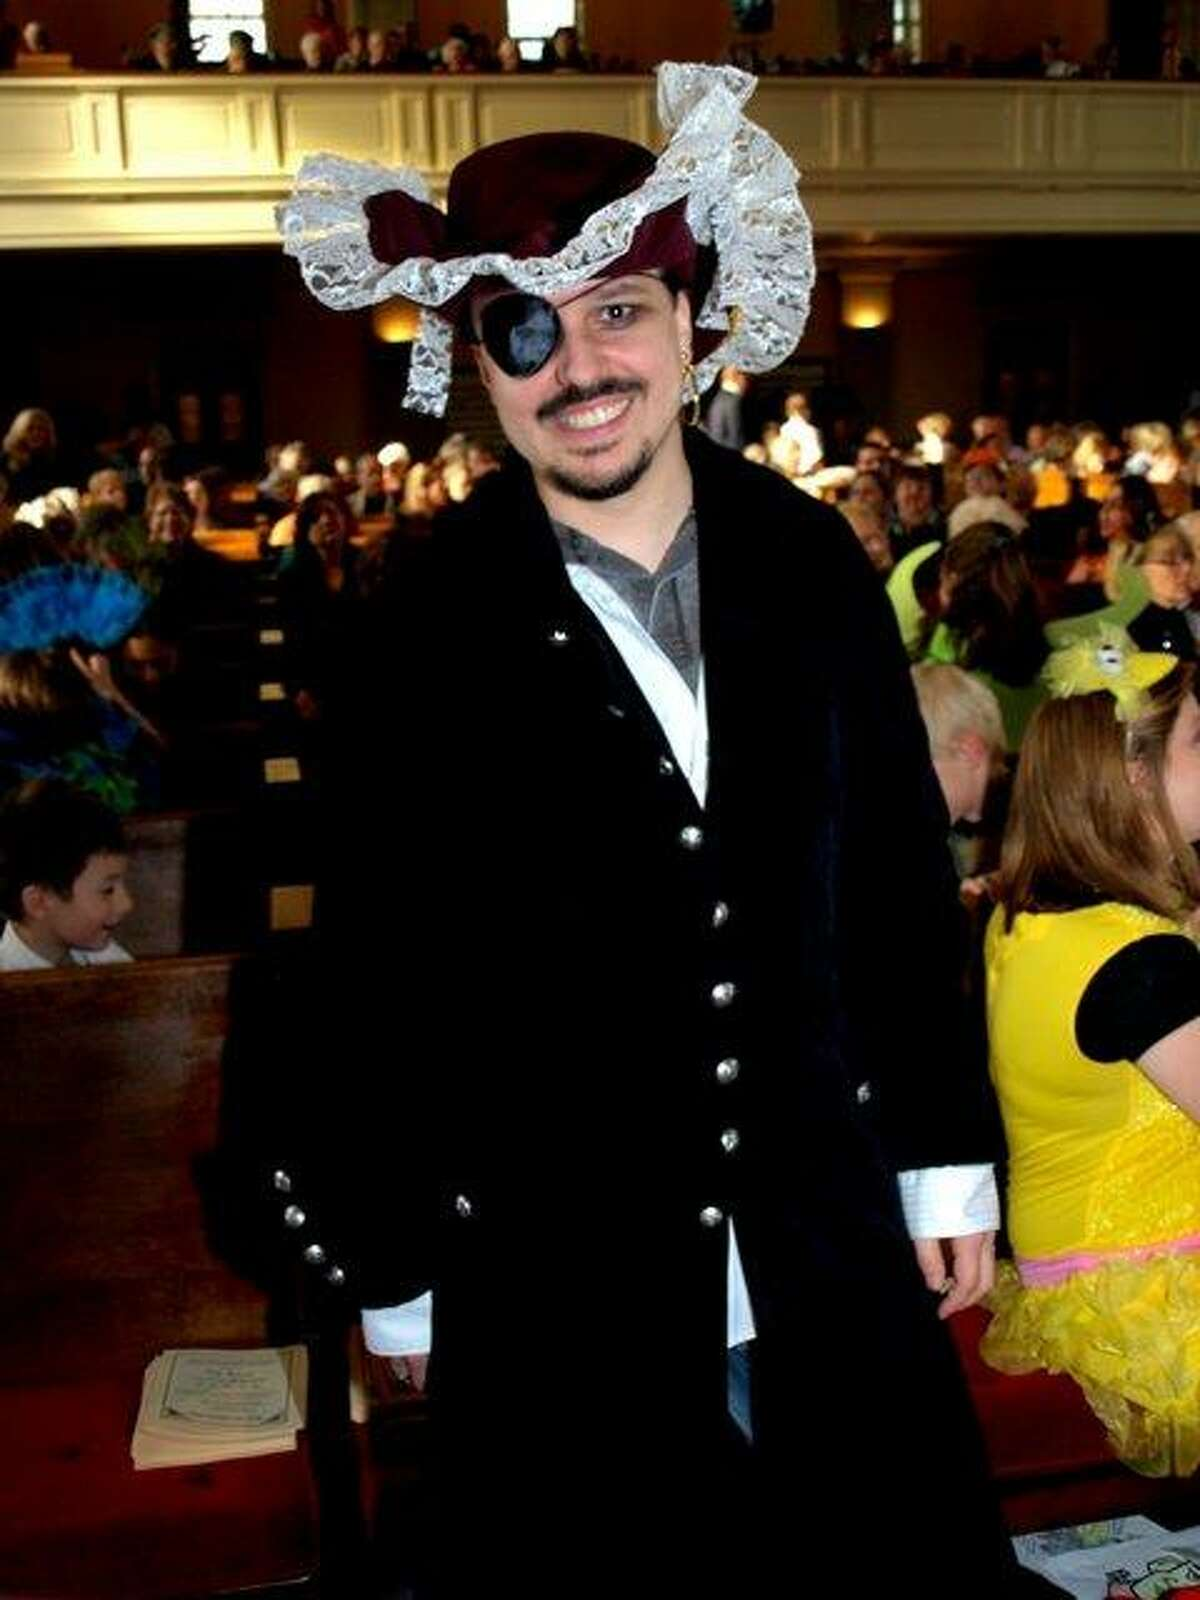 Everyone, young and old, is encouraged to wear Halloween costumes to the 16th annual Pipescreams Halloween Musical Extravaganza on Sunday in Stratford. Find out more.